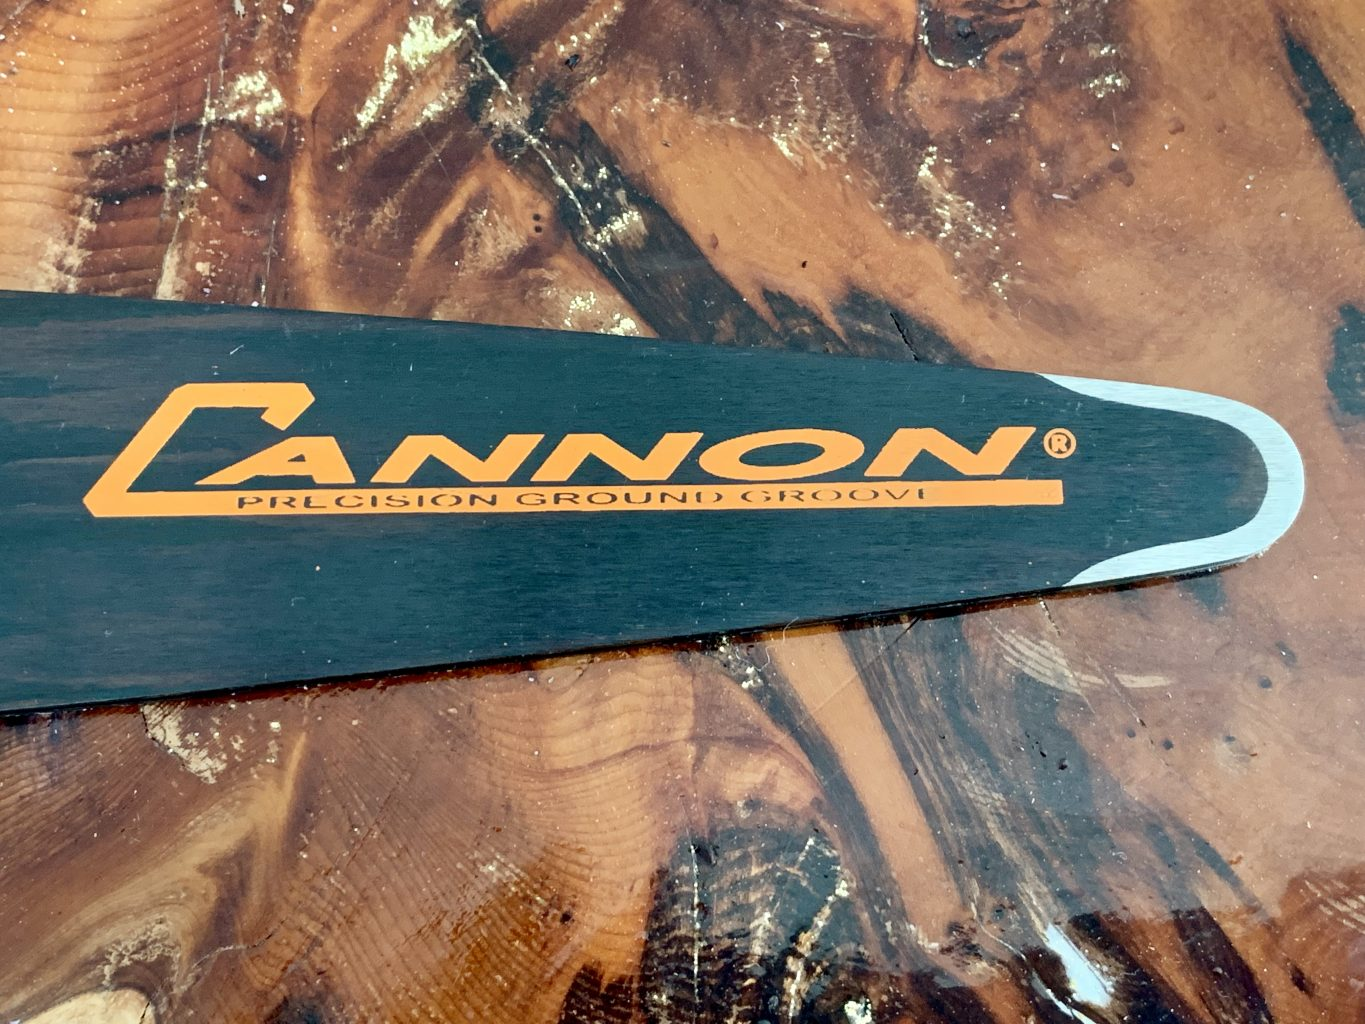 """CCT-S1-20-50 Cannon Carving Toonie Tip 20""""[50cm] 3/8 Lo Pro .050 70 drive links or .325 .050 80 drive links or 1/4 .050 102 drive links"""